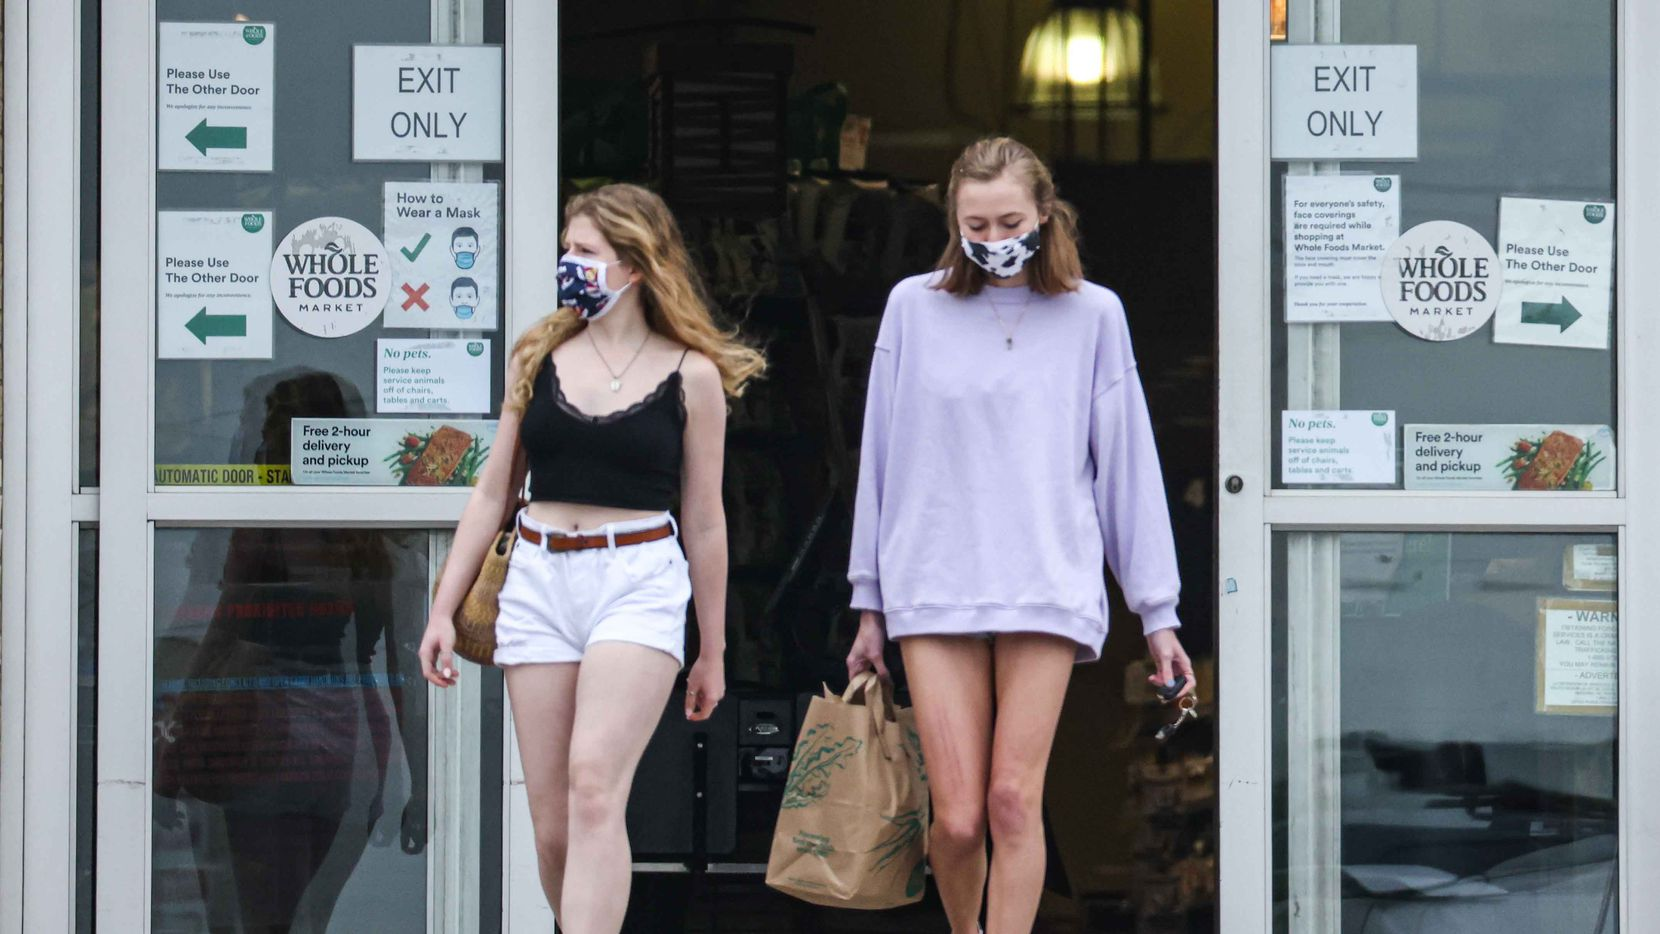 Emma Lloyd, 18, and Harper Jones, 18, leave Whole Foods Market on Abrams Rd as they wear masks even after COVID-19 mandates were lifted in March by Texas officials. Competitor Trader Joe's said Friday it will no longer require masks.